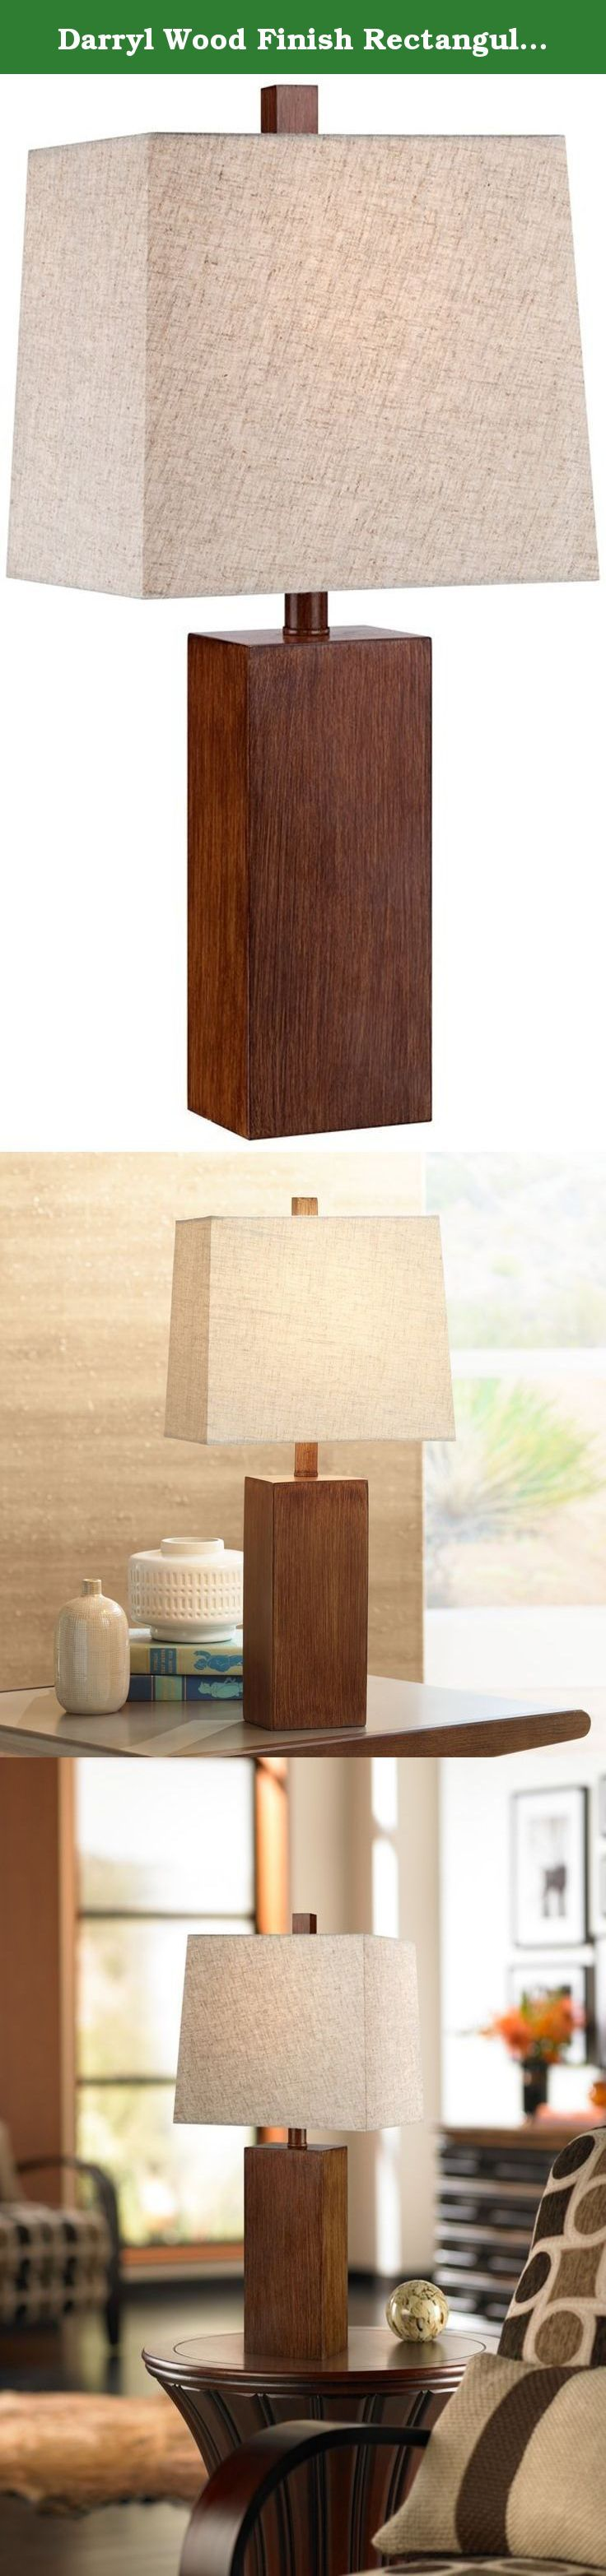 Darryl Wood Finish Rectangular Table Lamp. A handsome accent for any modern or Craftsman style home, the Darryl table lamp features a clean, linear design with a rich wood finish. The rectangular shade up top mimics the organic feel of the design while diffusing the glow from the light bulb. Place on top of a nightstand, desk, or console table for illumination in sophisticated style. A 360 Lighting design. - Rectangular block table lamp. - Faux wood finish. - Rectangular shade. - On-off...